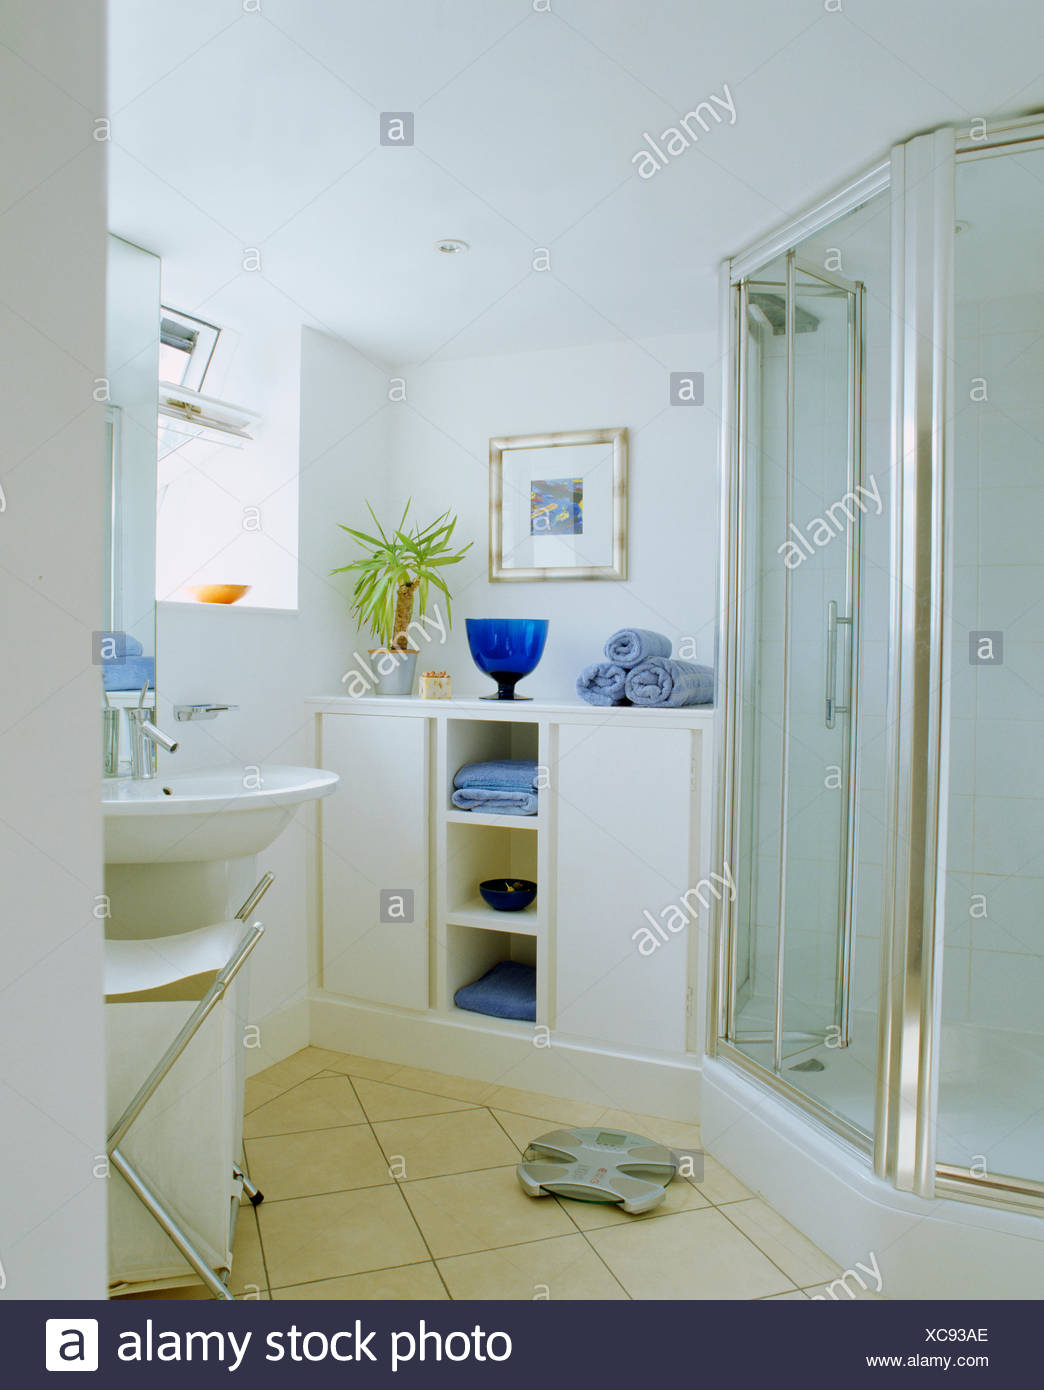 Large Blue Glass Vase And Pale Blue Towels On Shelf Unit In Modern White  Bathroom With Glass Shower Doors